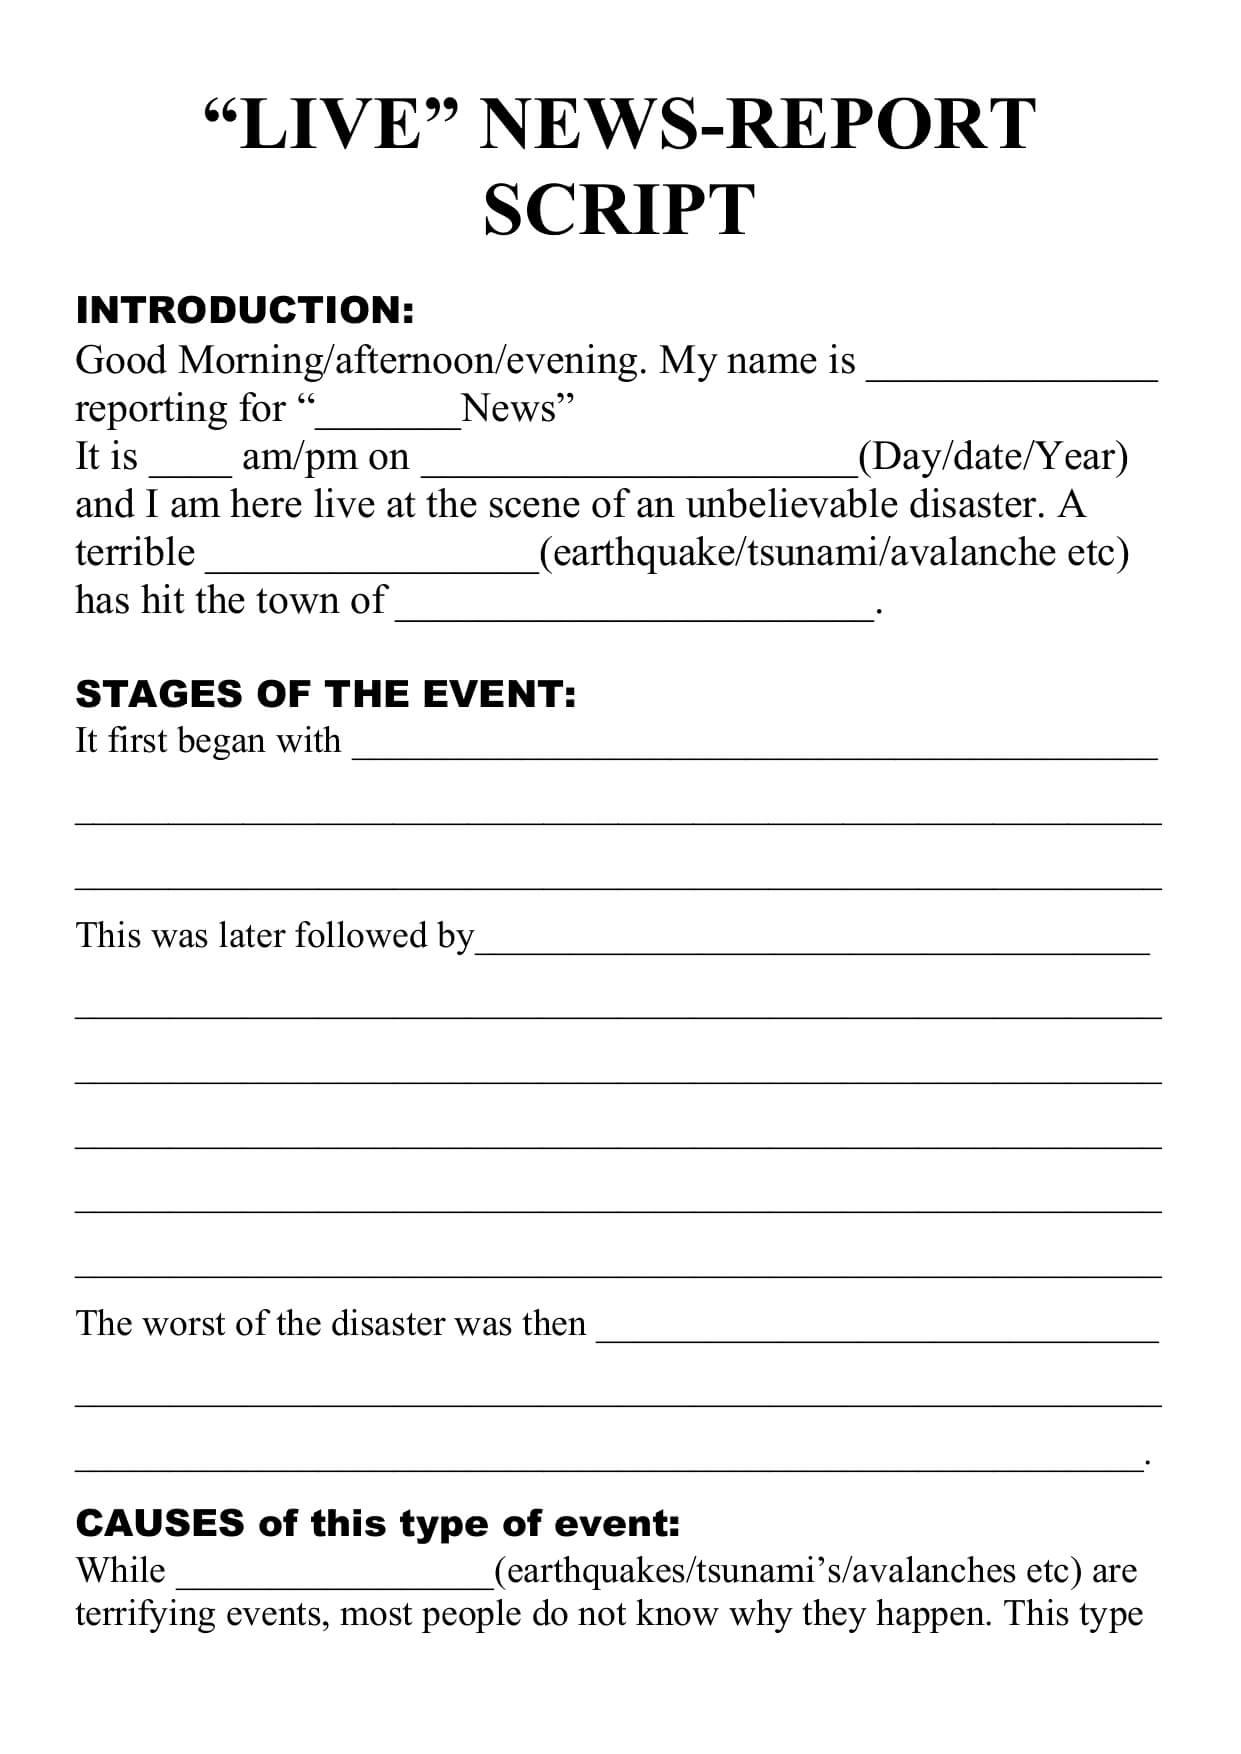 Natural Disaster - Live Newsreport Script Template Throughout News Report Template